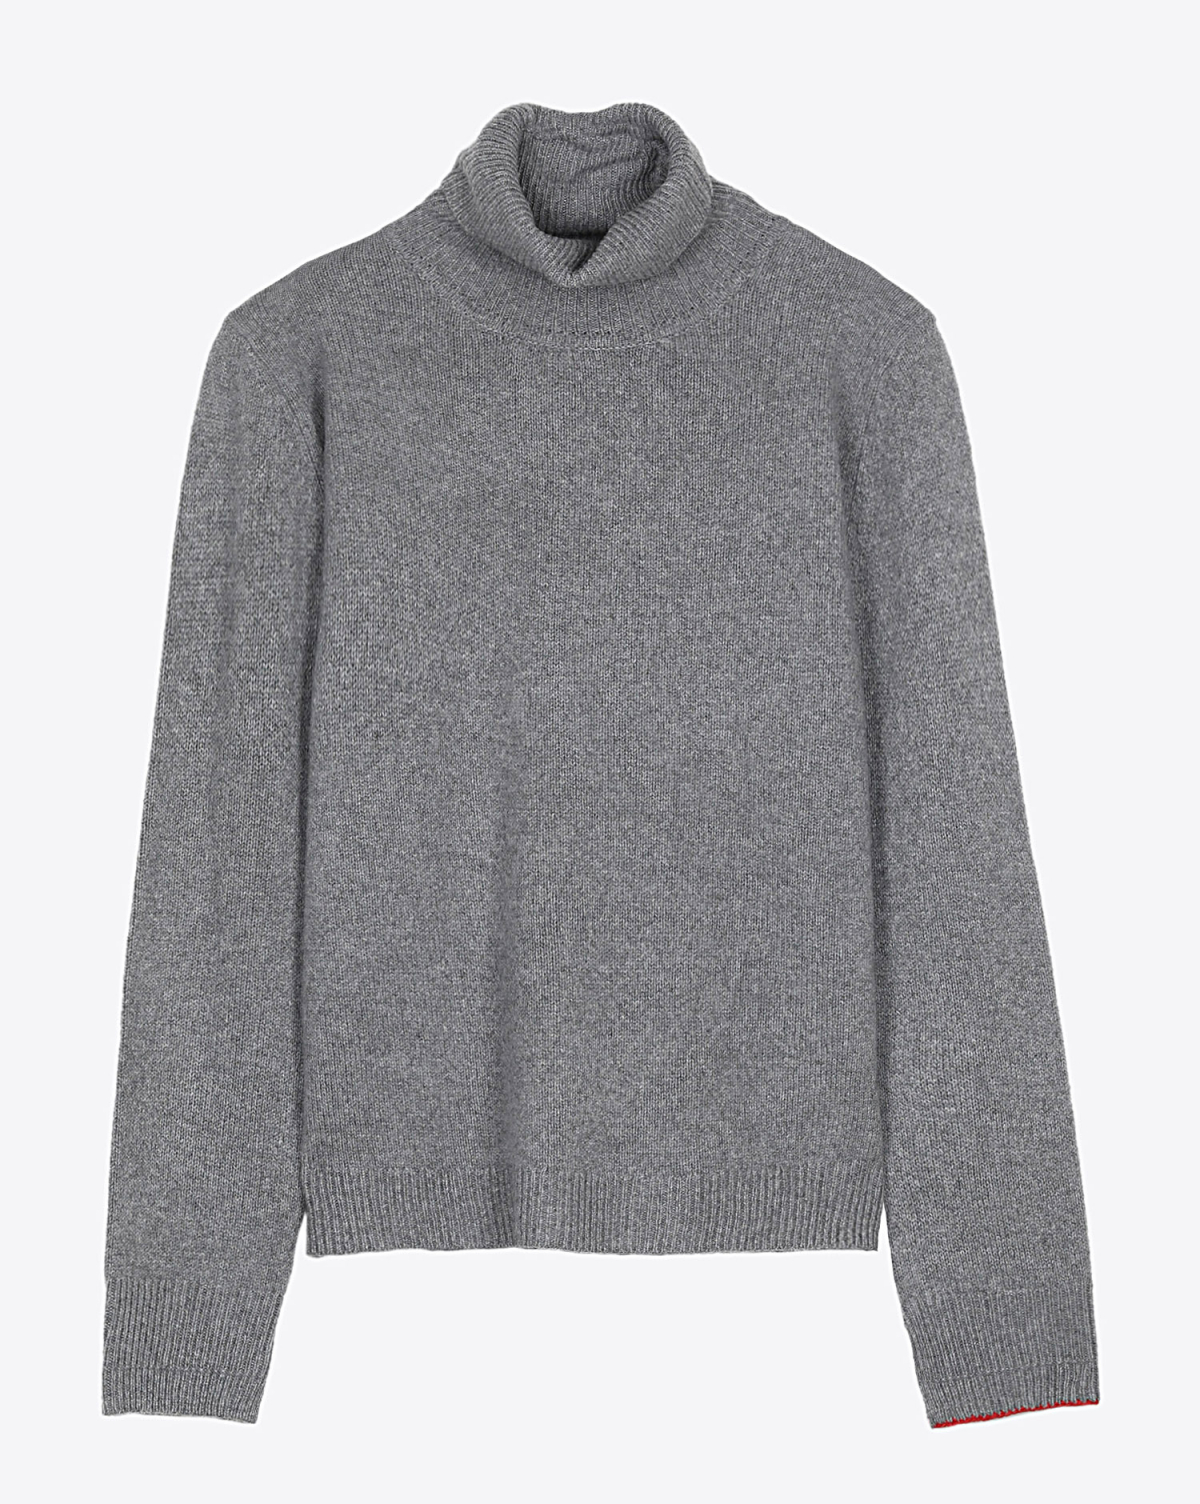 Raquel Allegra Turtleneck - Heather Grey